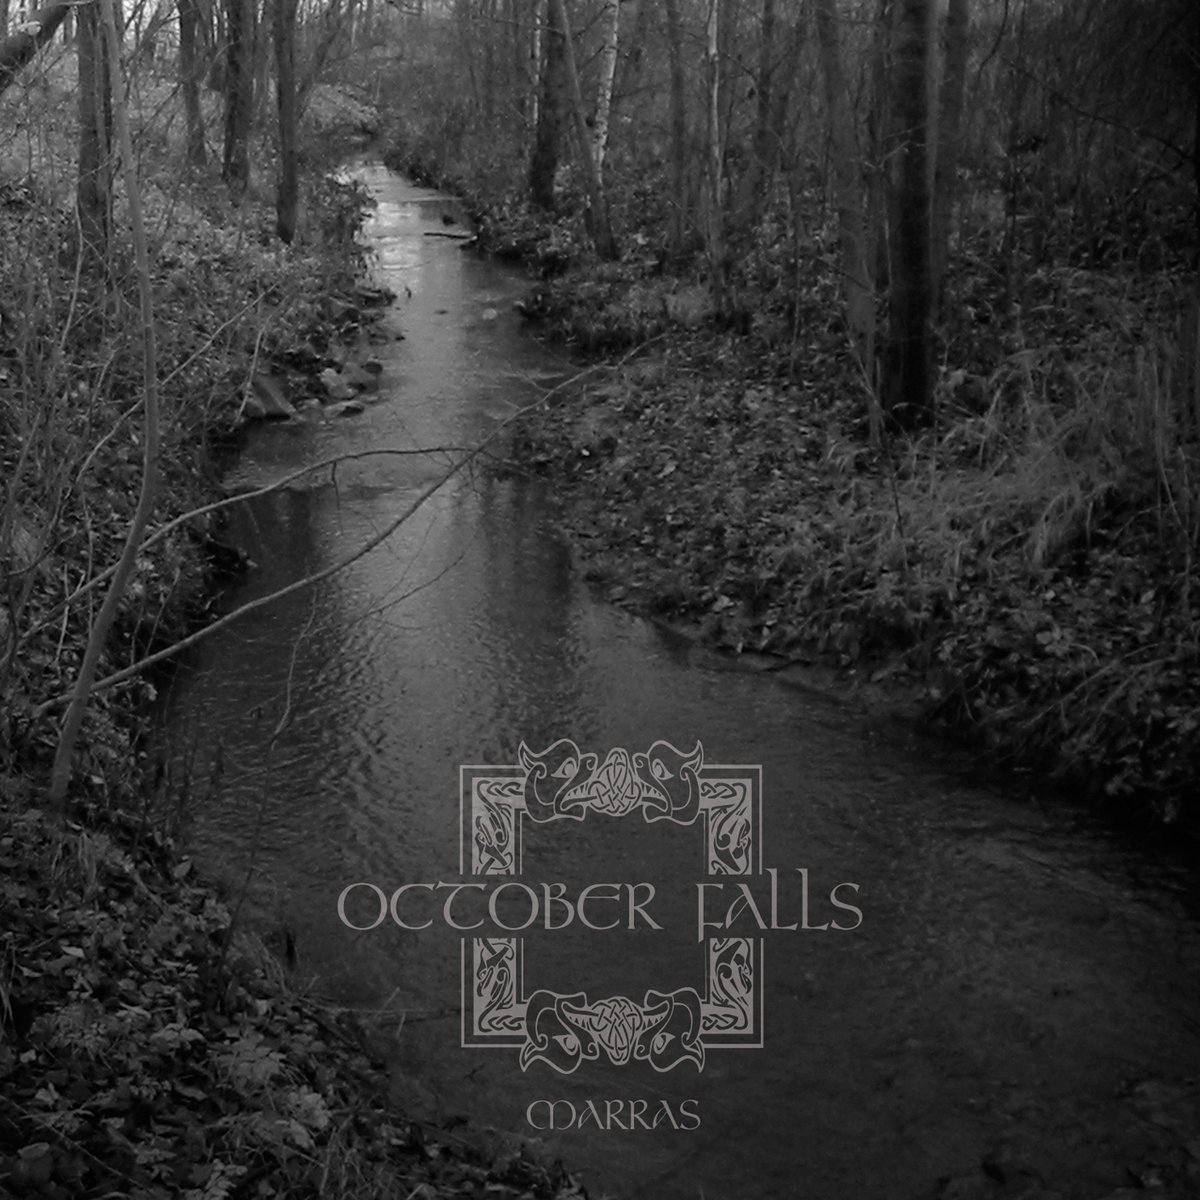 Review for October Falls - Marras